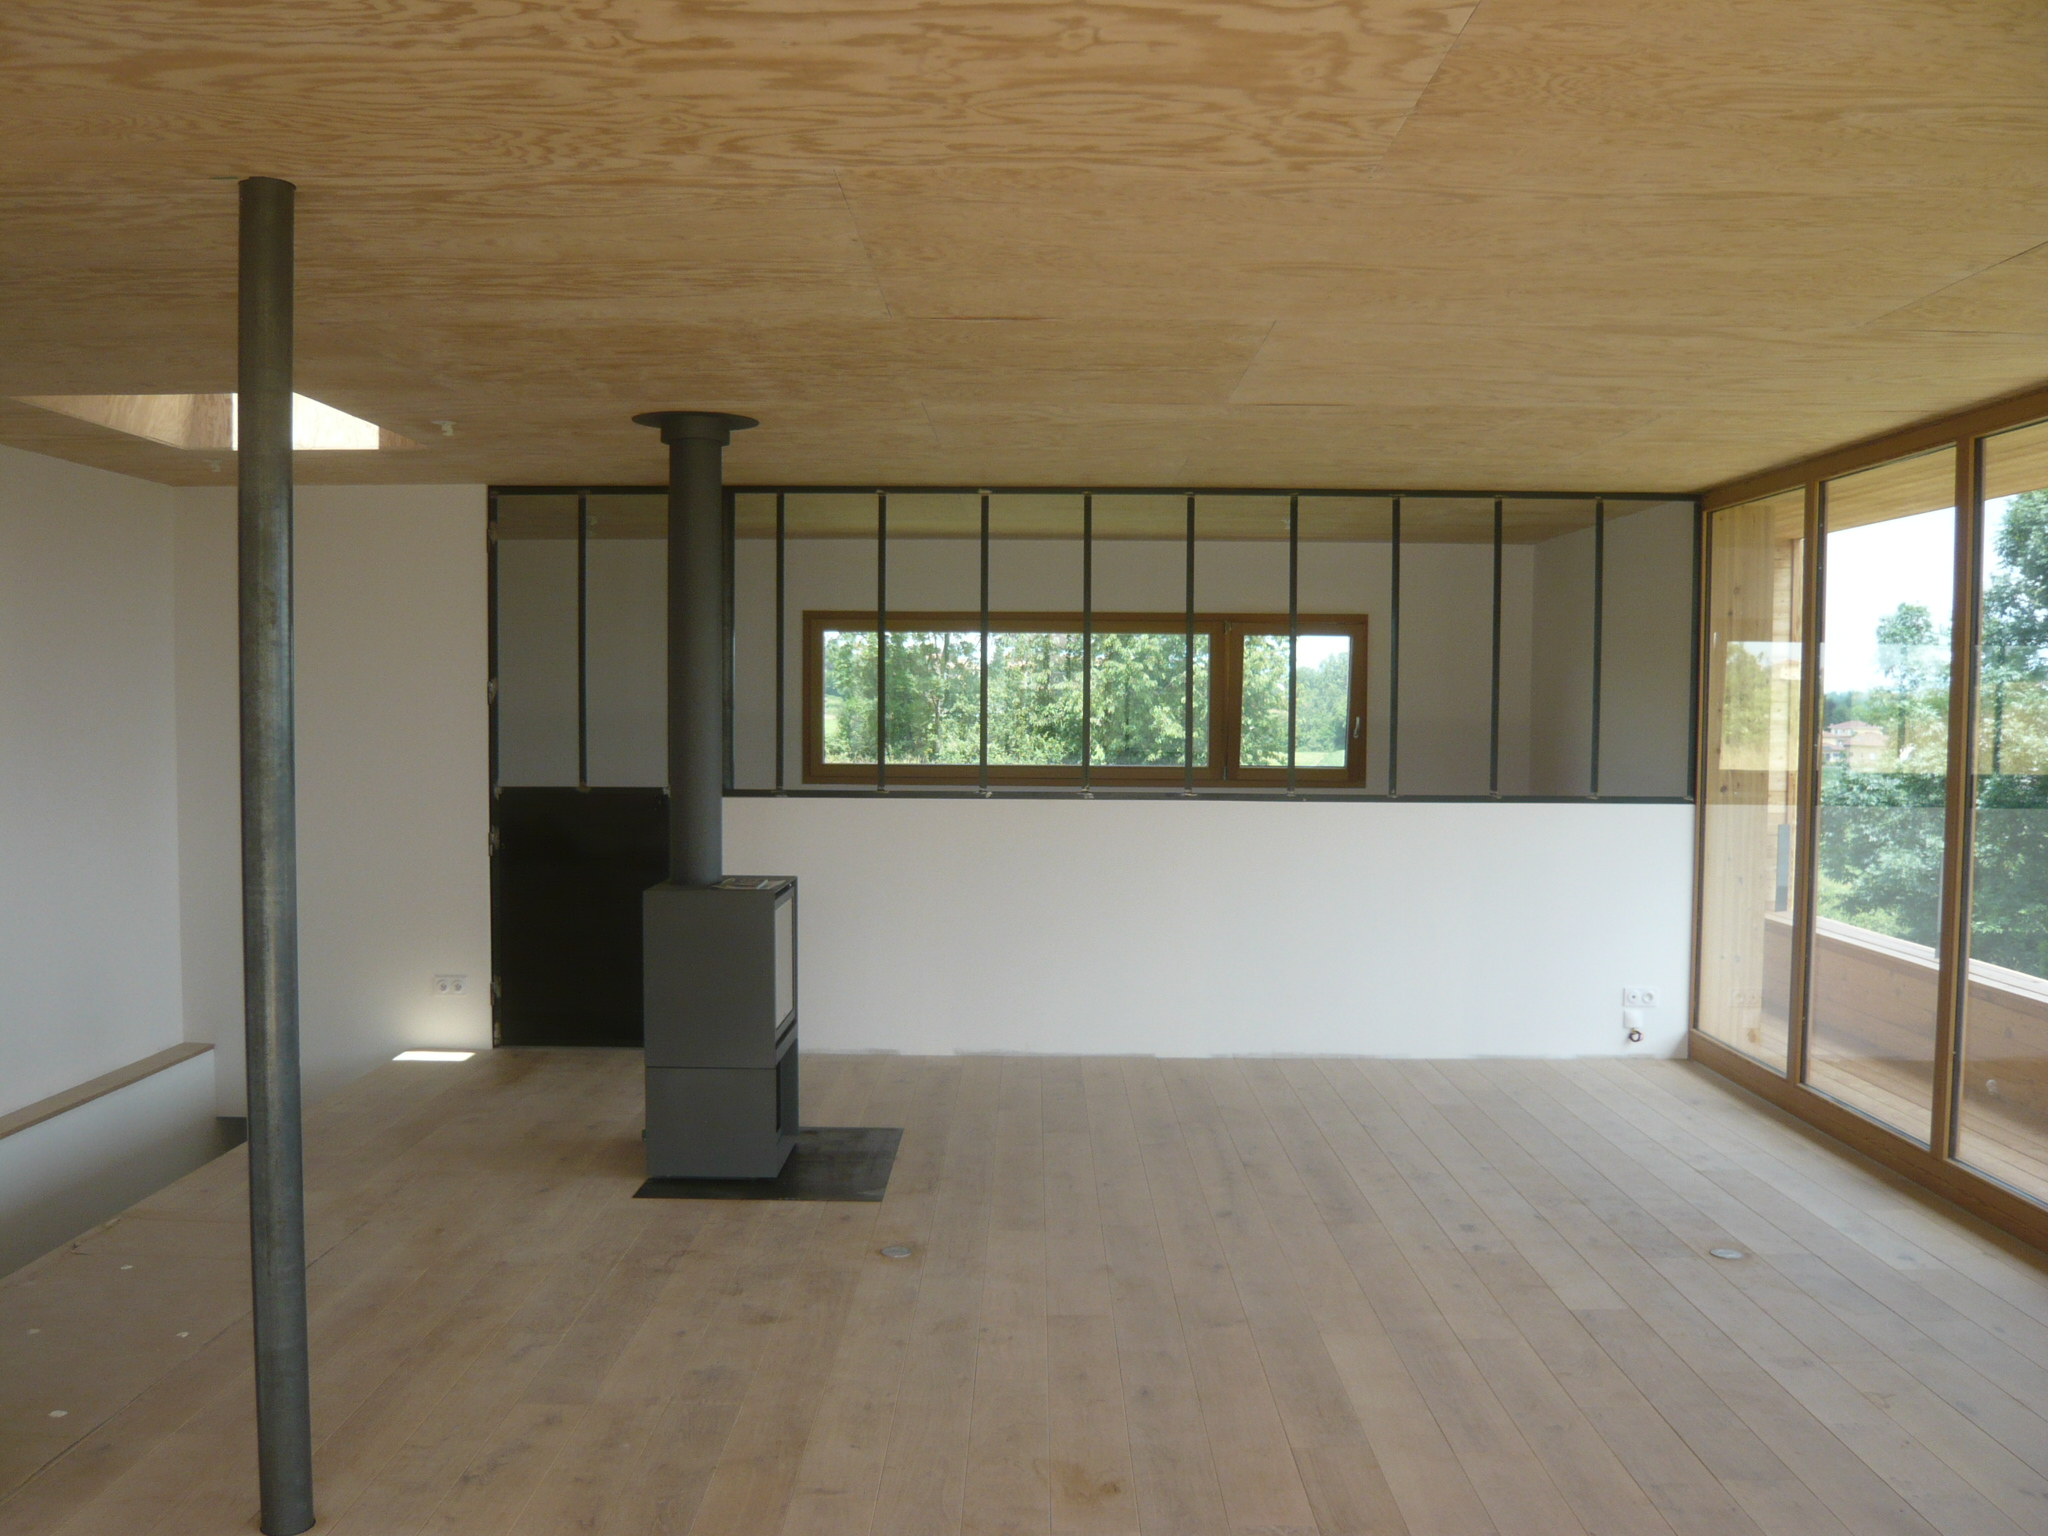 Interieur maison bois contemporaine maison eko for Interieur maison architecte contemporaine